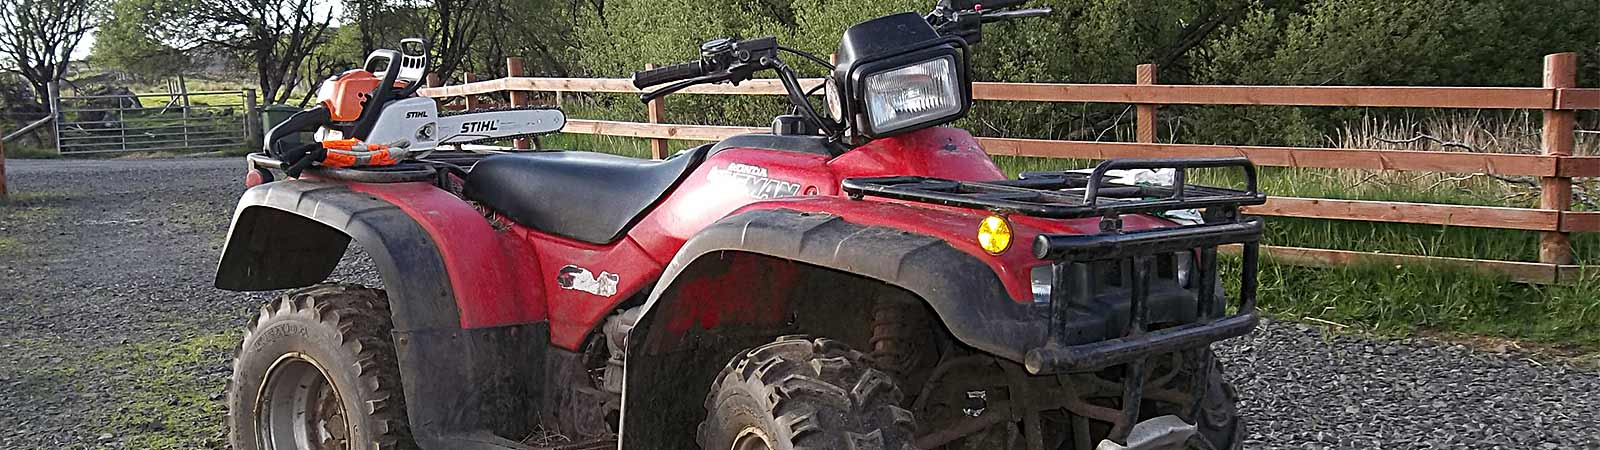 ATV and agricultural machinery repairs